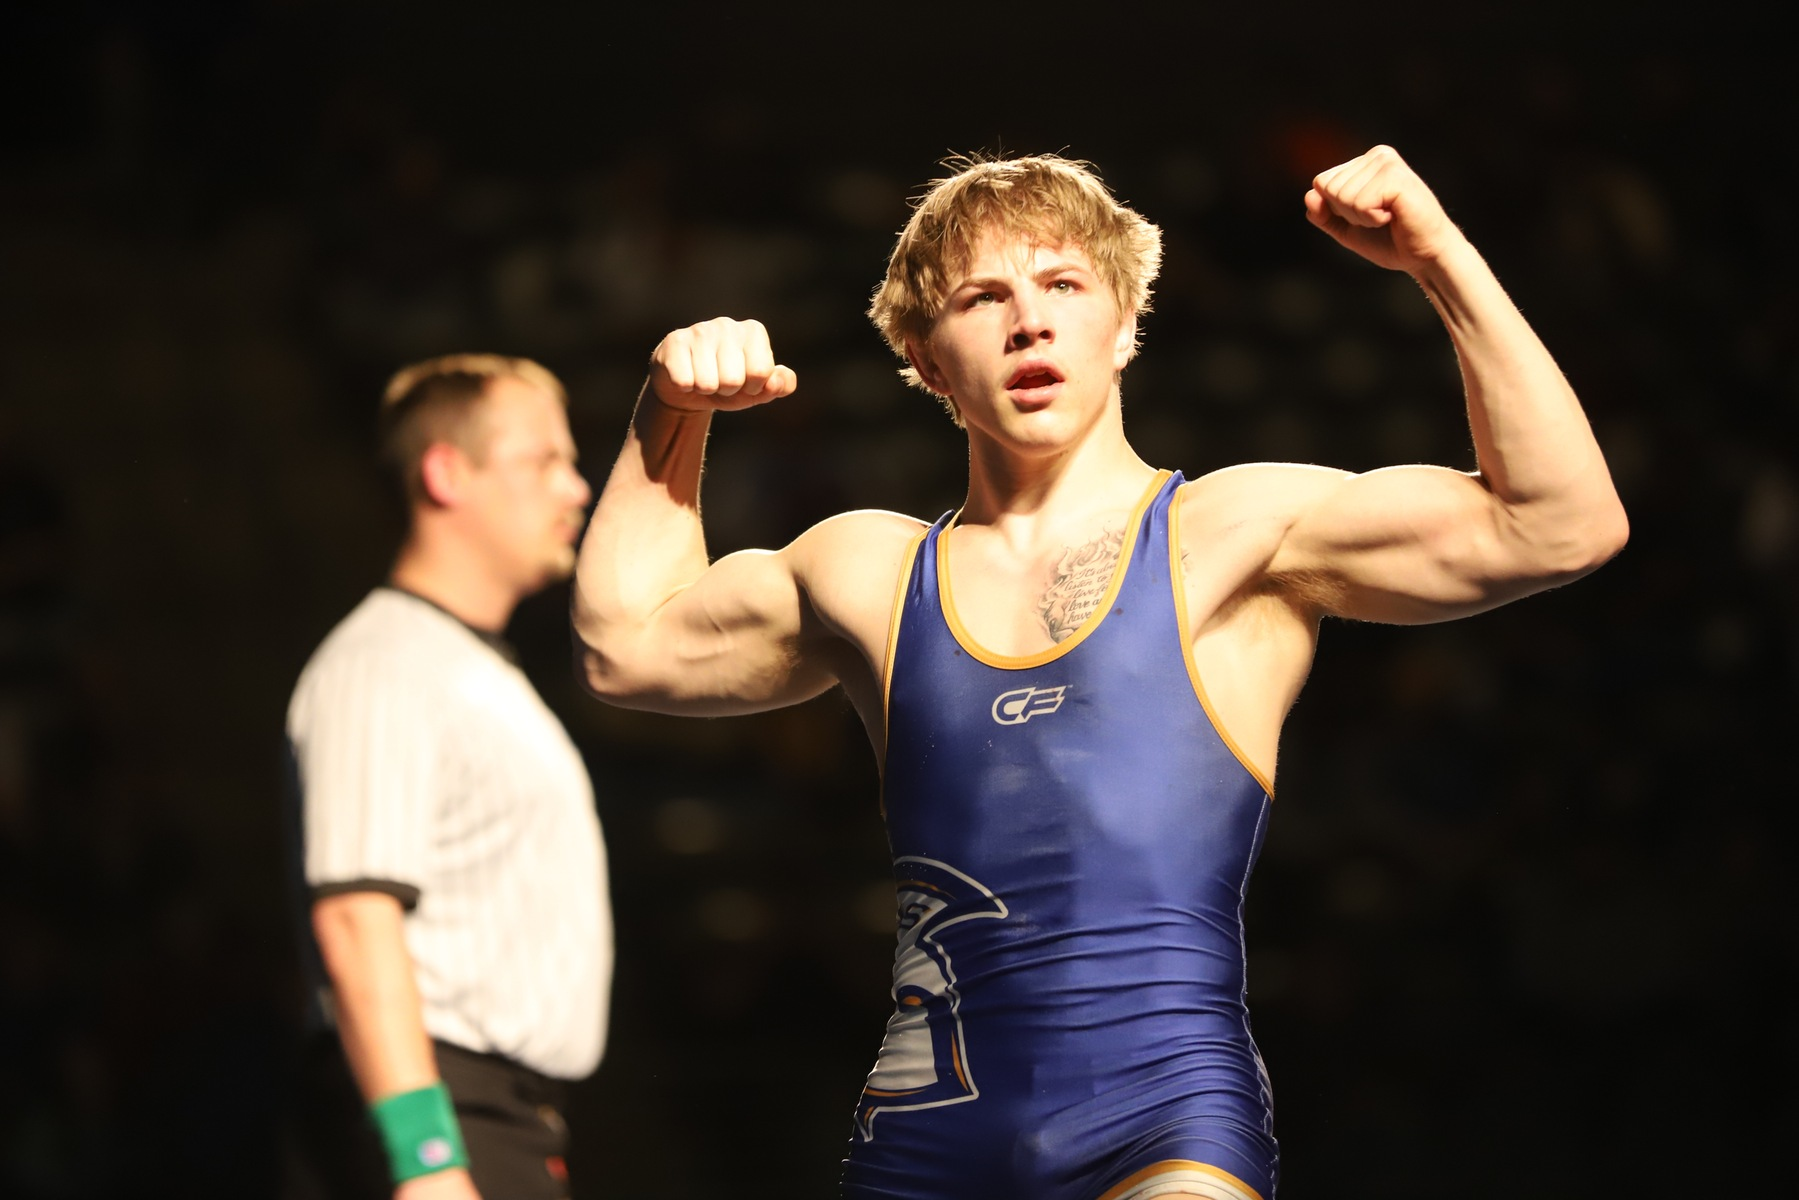 NIACC's Austin Anderly flexes after winning the 141-pound national title Saturday night. Photo by Paul DeCoursey.